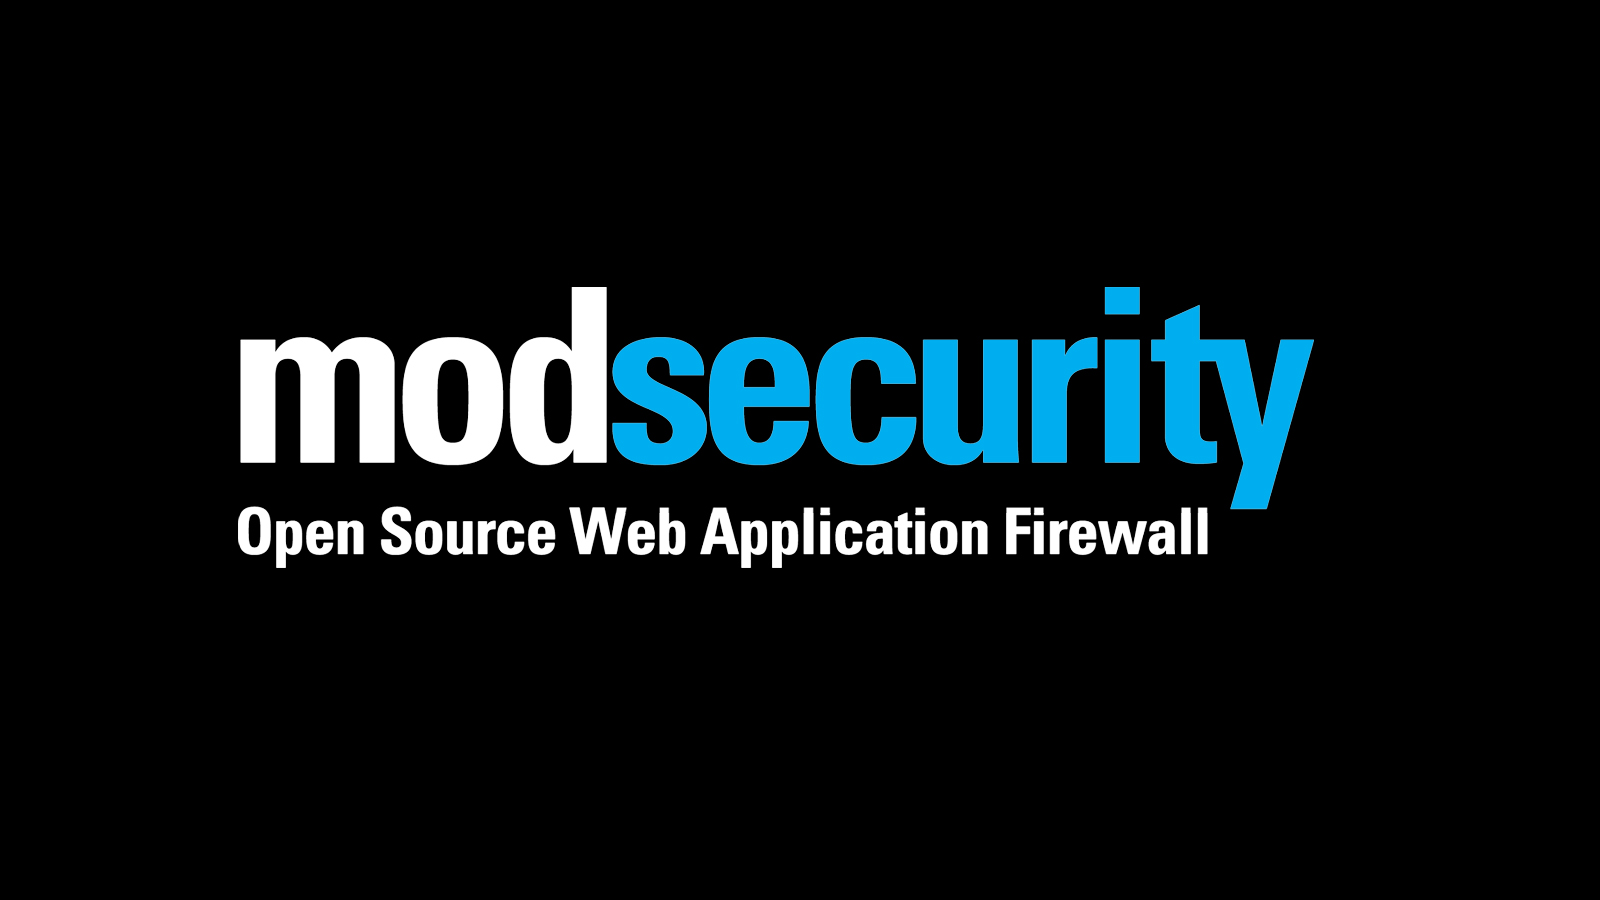 ModSecurity - An Open Source Web Application Firewall Engine